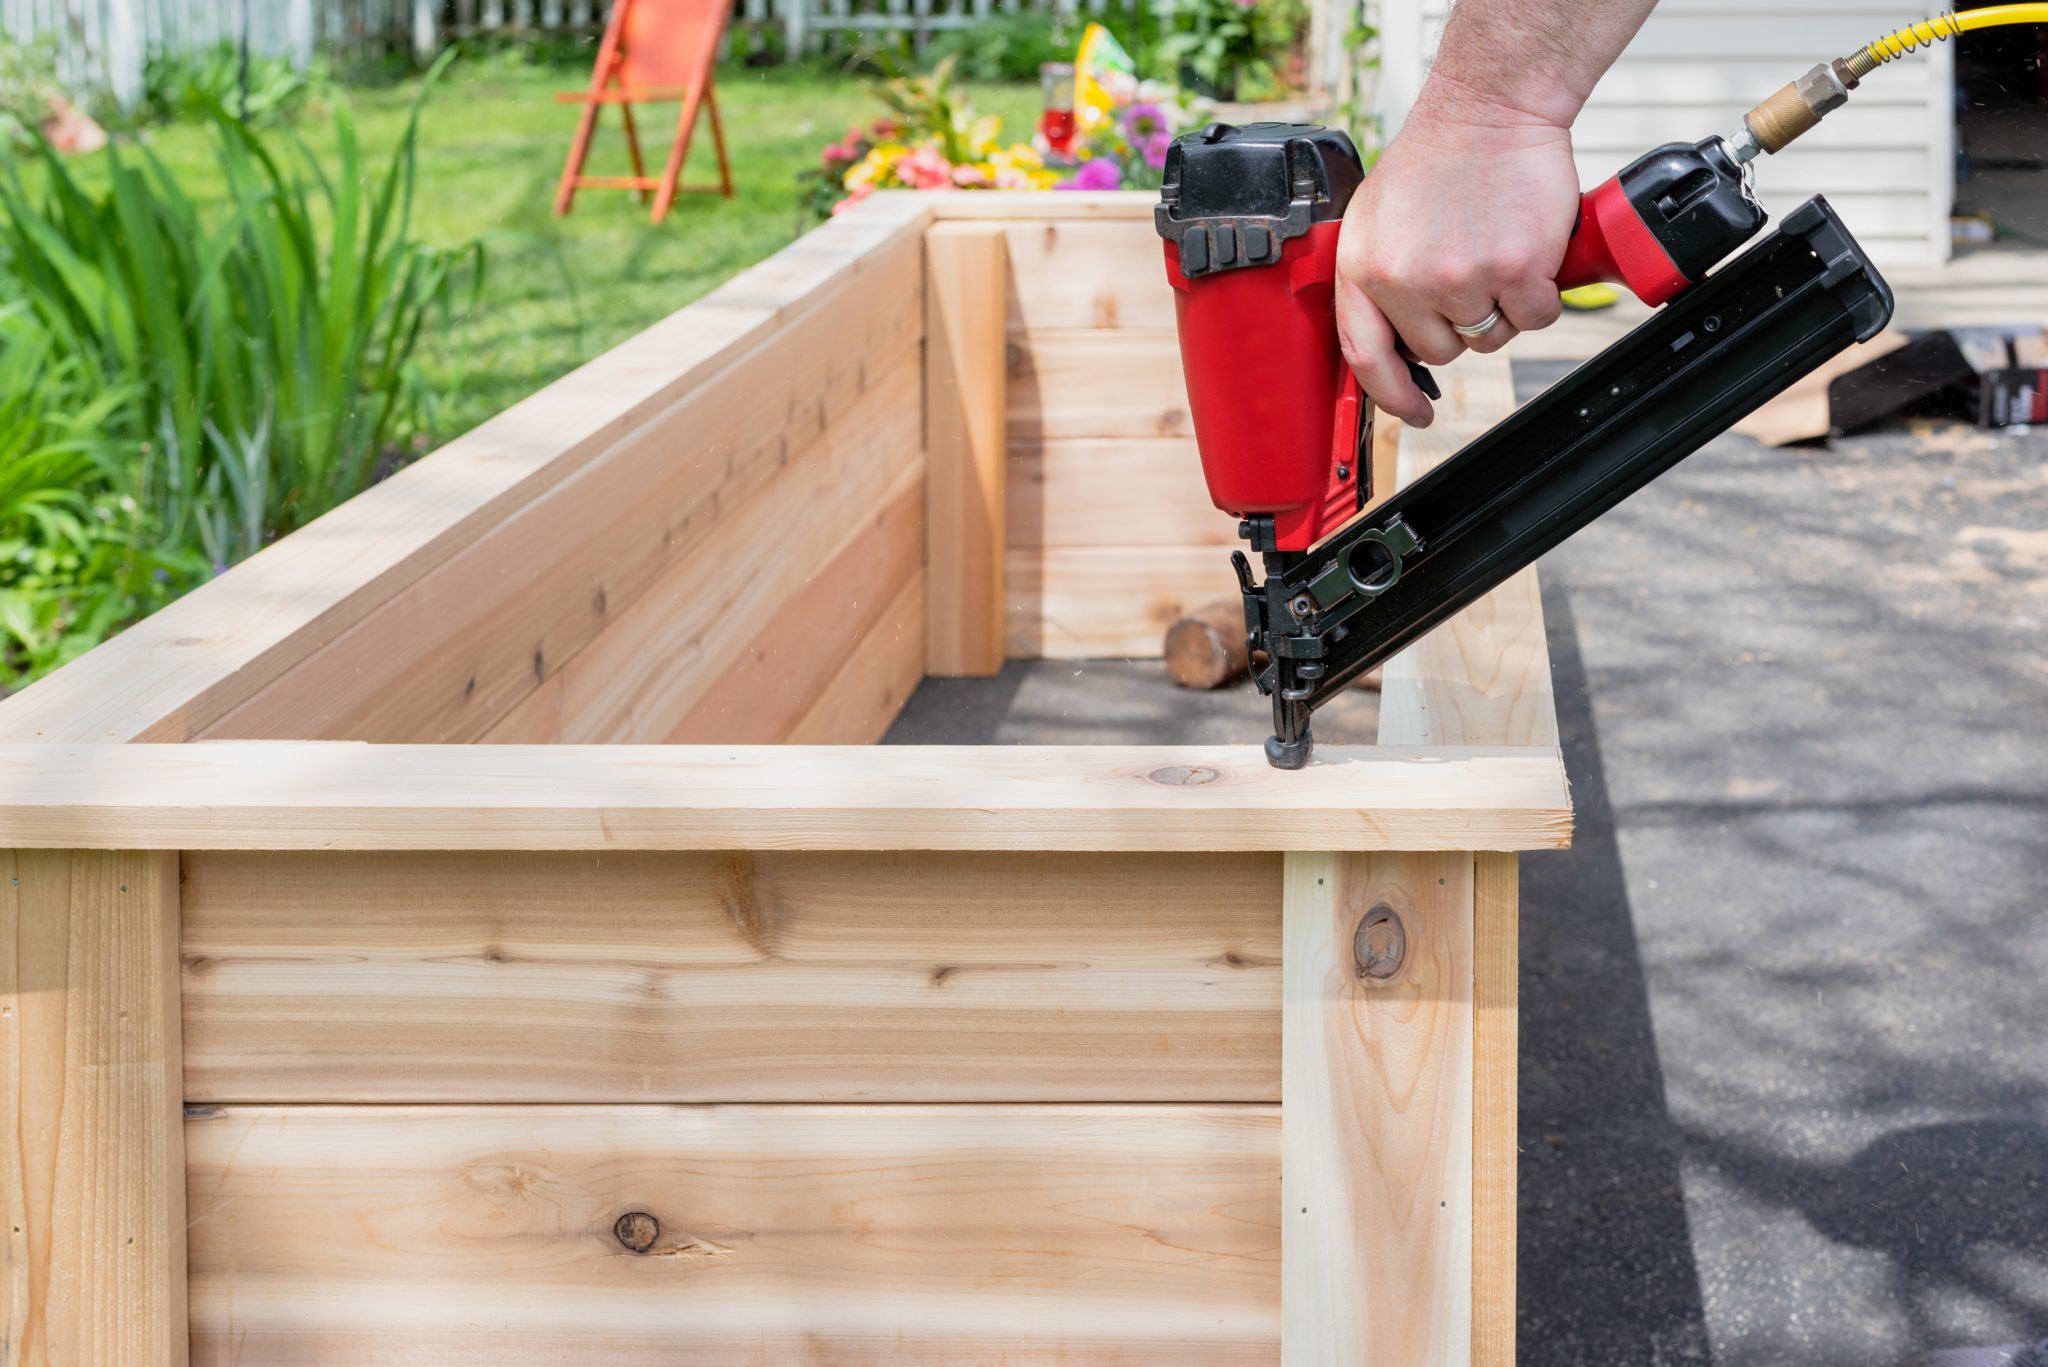 How to Make Raised Garden Bed